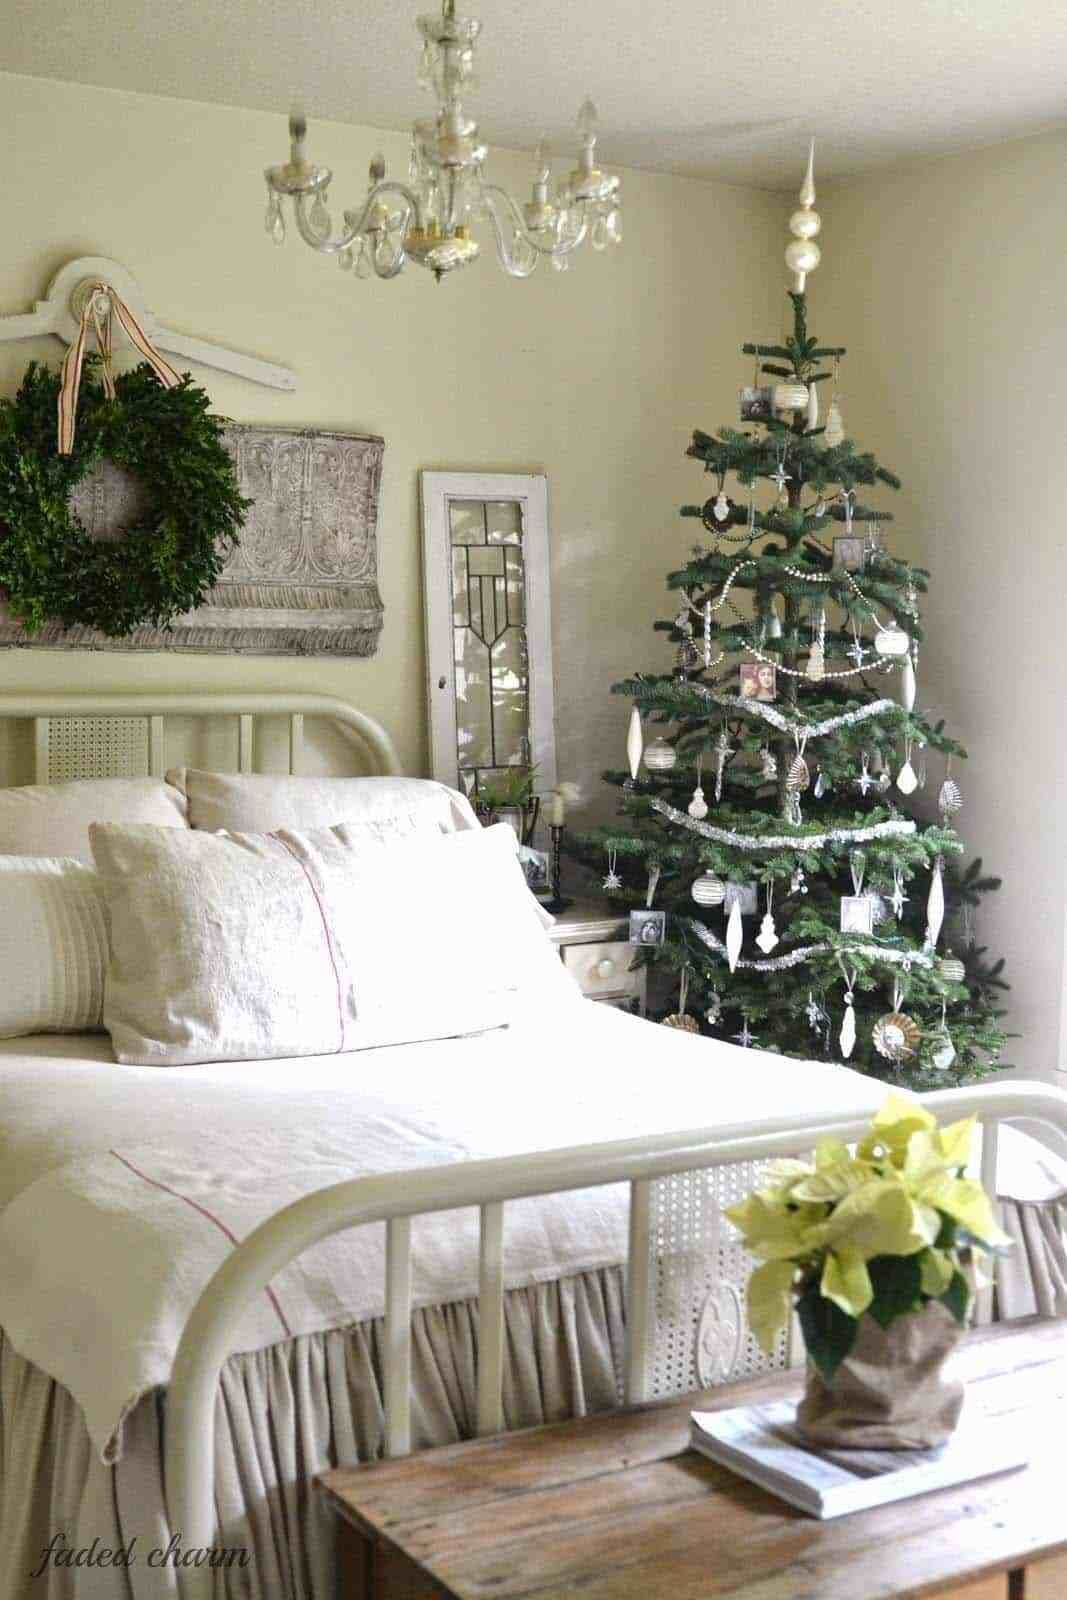 Best Christmas Bedroom Decorating Ideas 08 1 Kindesign With Pictures